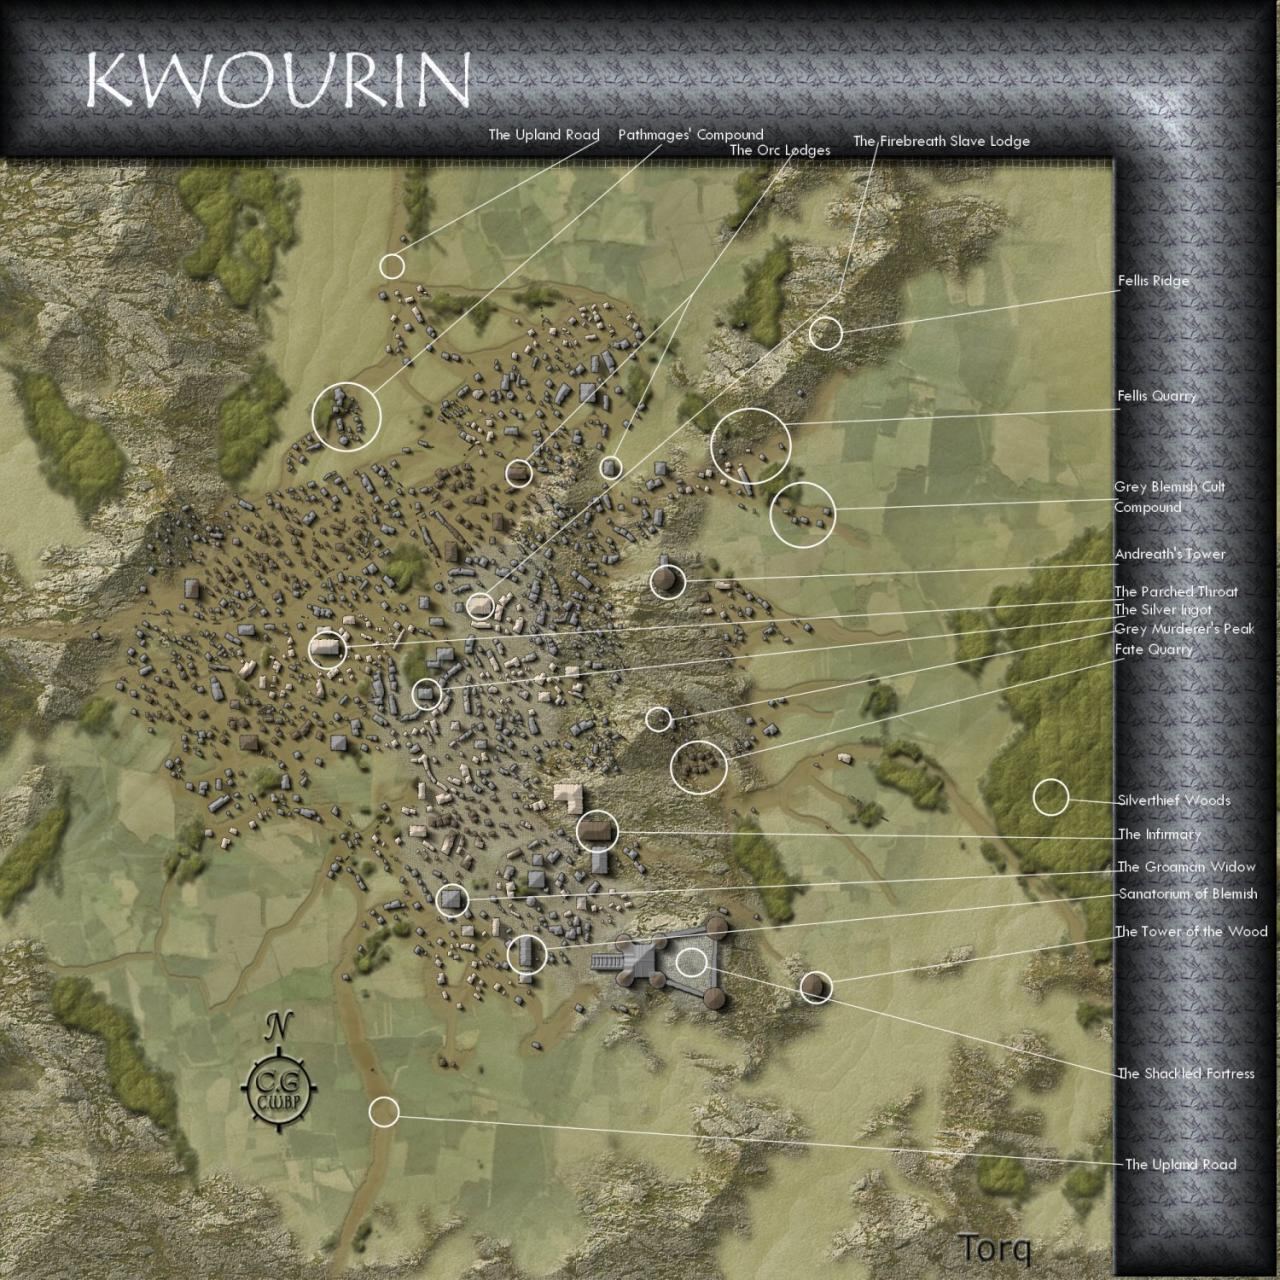 Kwourin, a town in Groam built for the CWBP